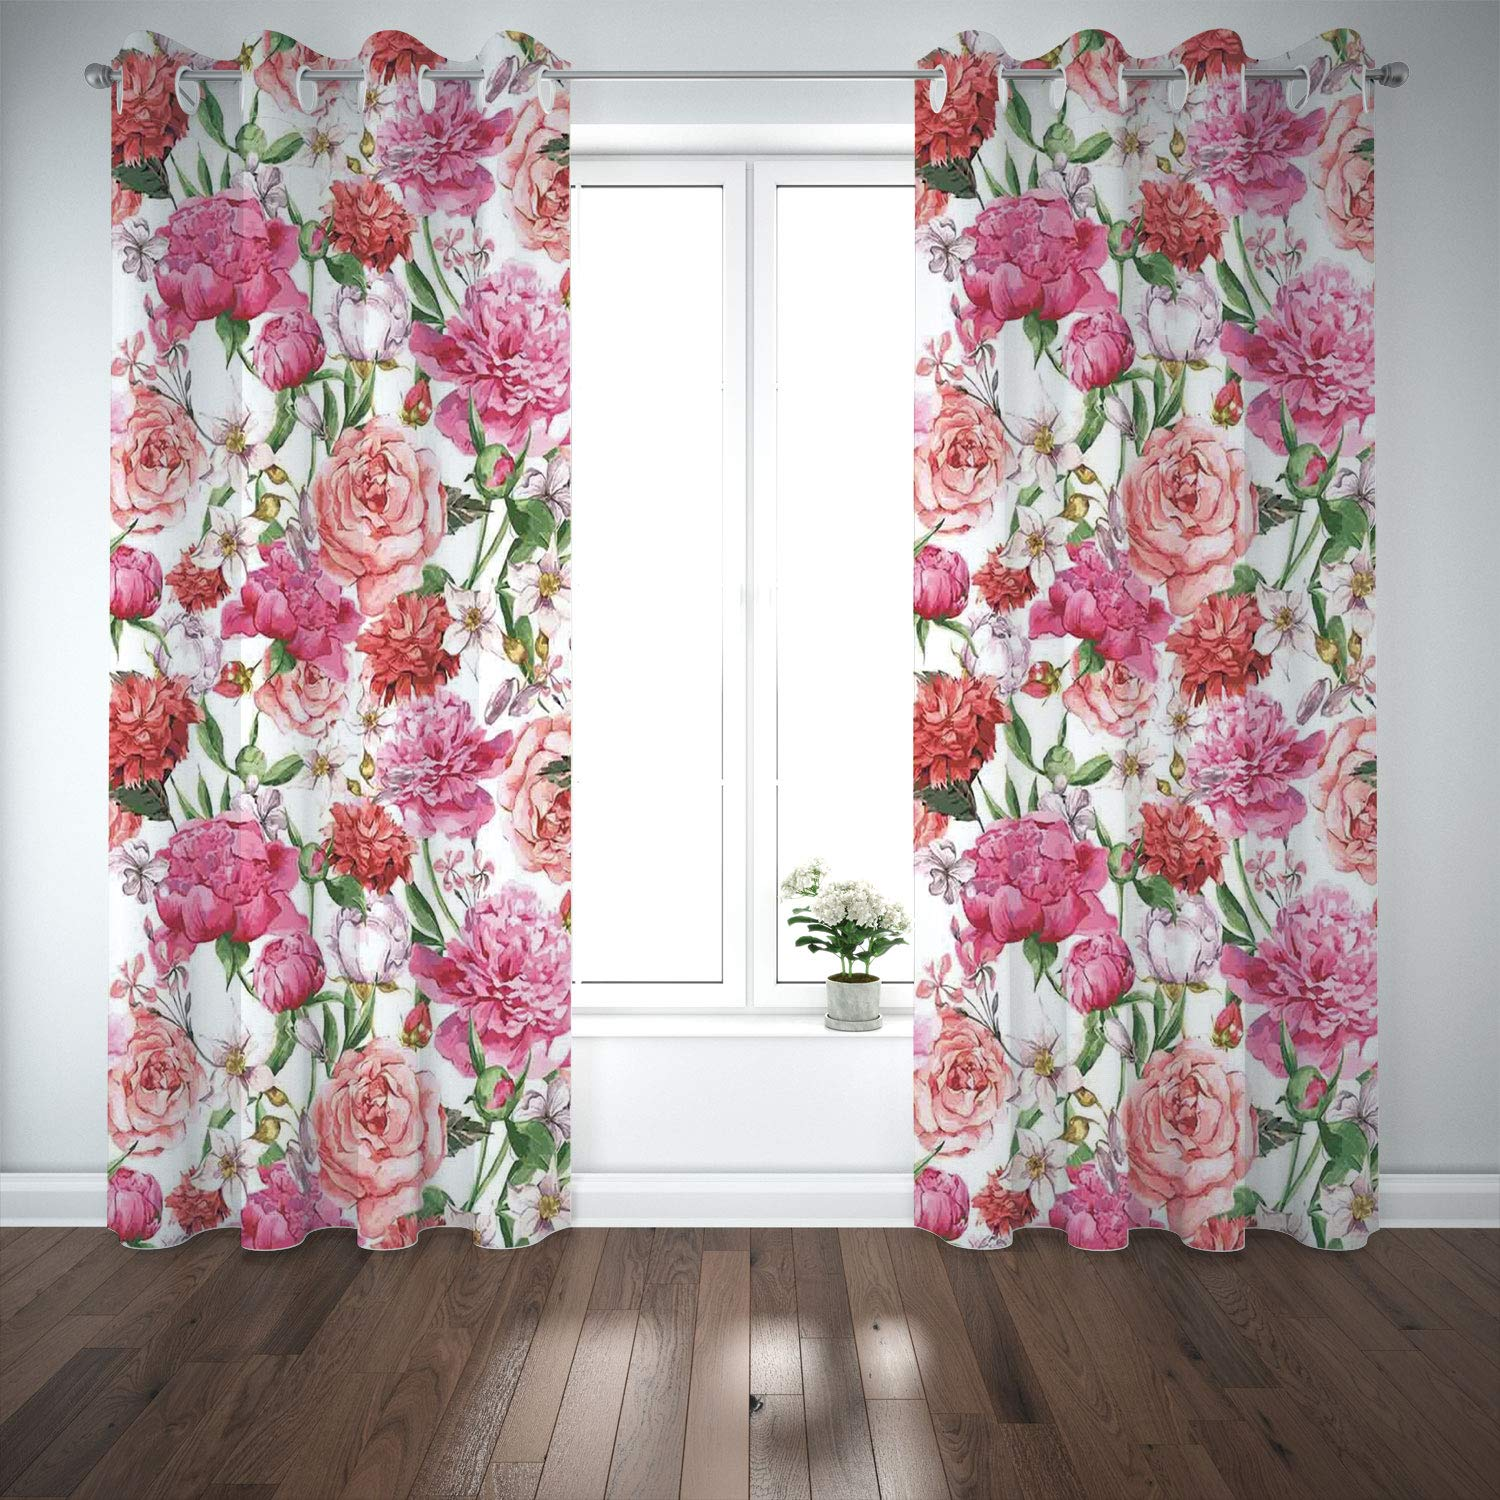 SCOCICI Grommet Satin Window Curtains Drapes [ Watercolor Flower,Peonies Roses Victorian Style Floral Pattern Painting Style Print Decorative,Pink Red White] Living Room Bedroom Kitchen Cafe